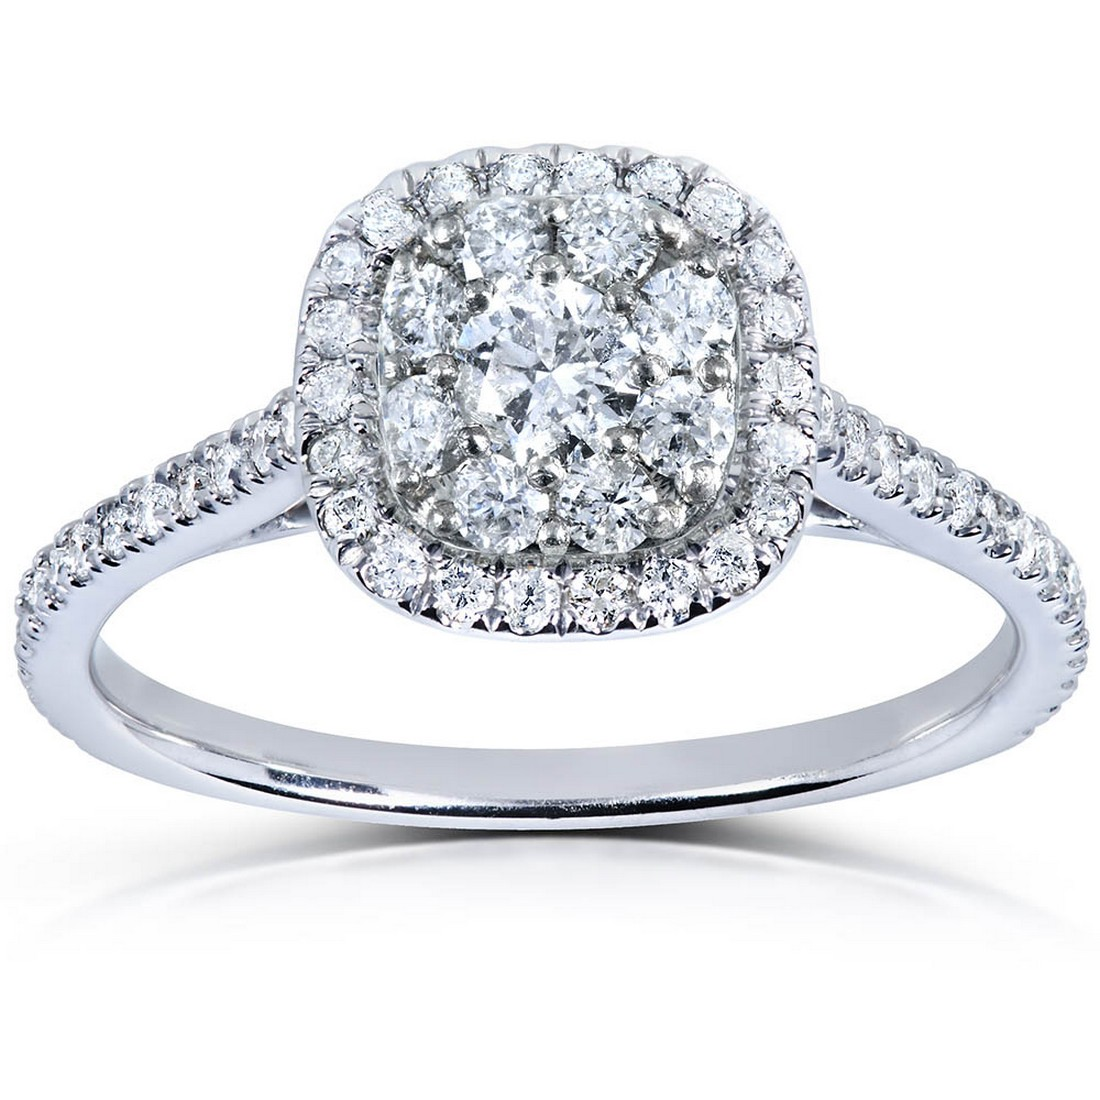 Uniqueness You Can Find In Harry Winston Wedding Rings